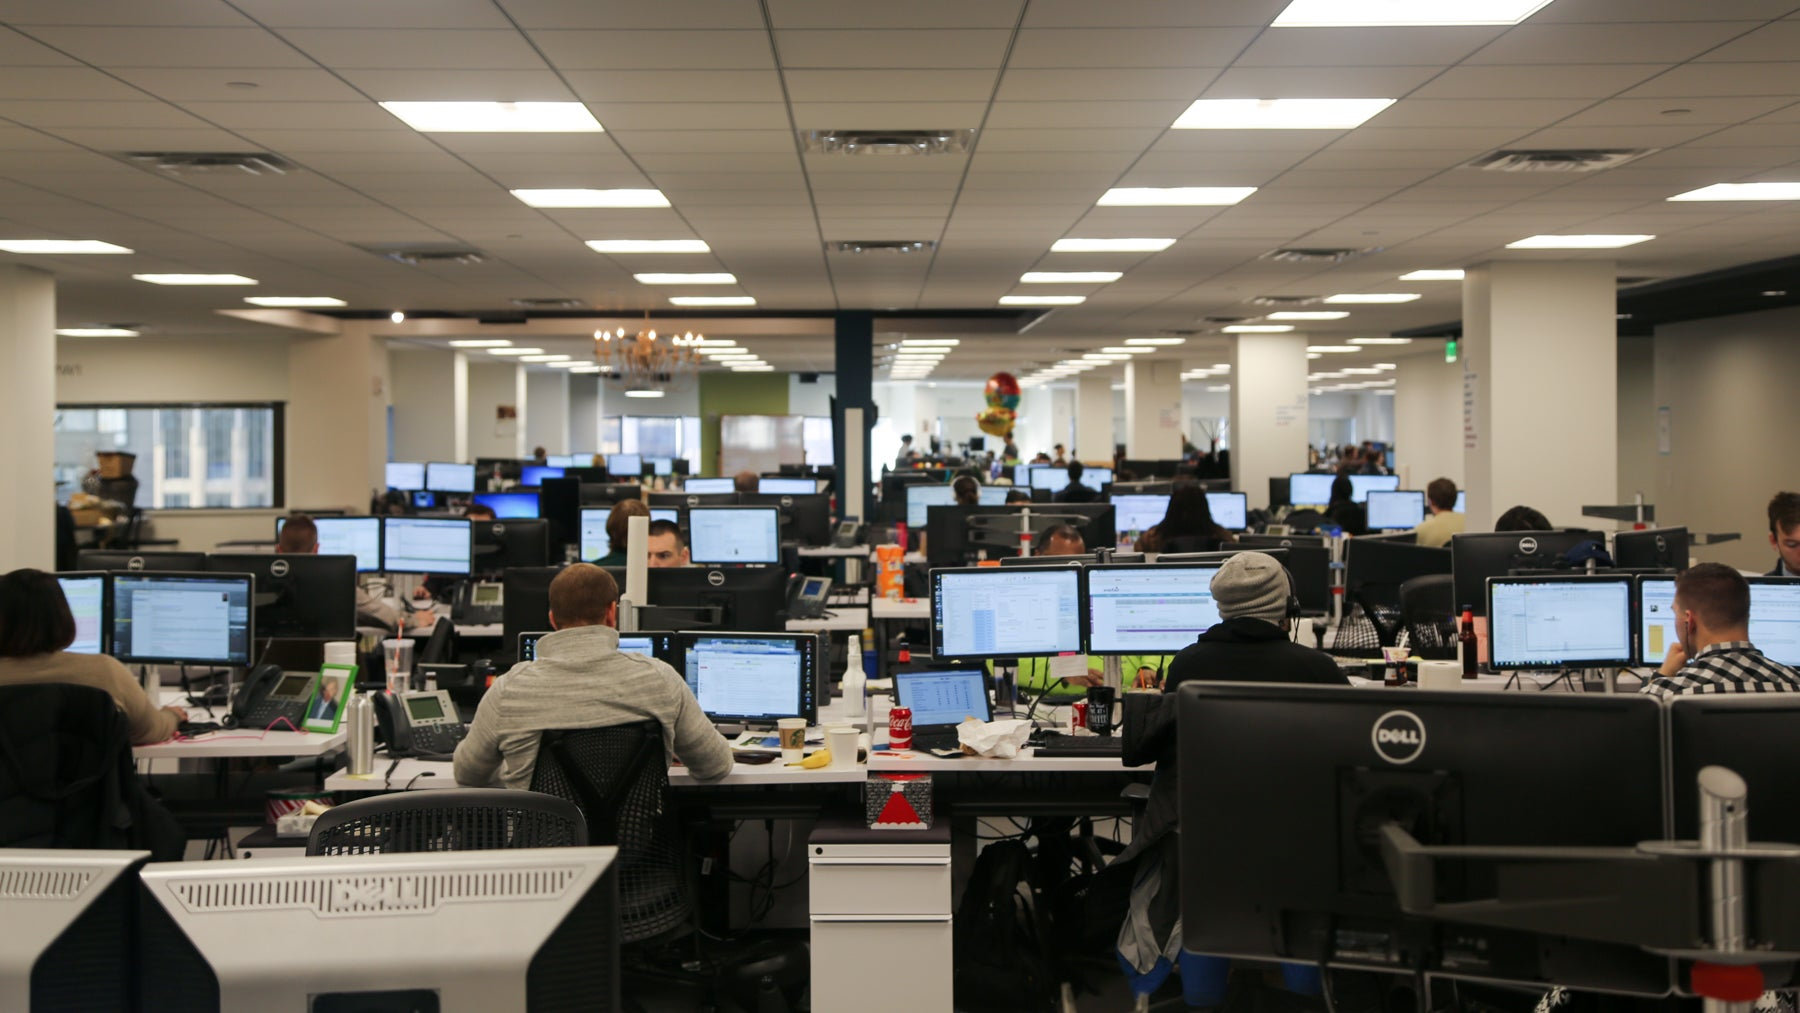 Wayfair has about 2,000 employees at the Boston offices.